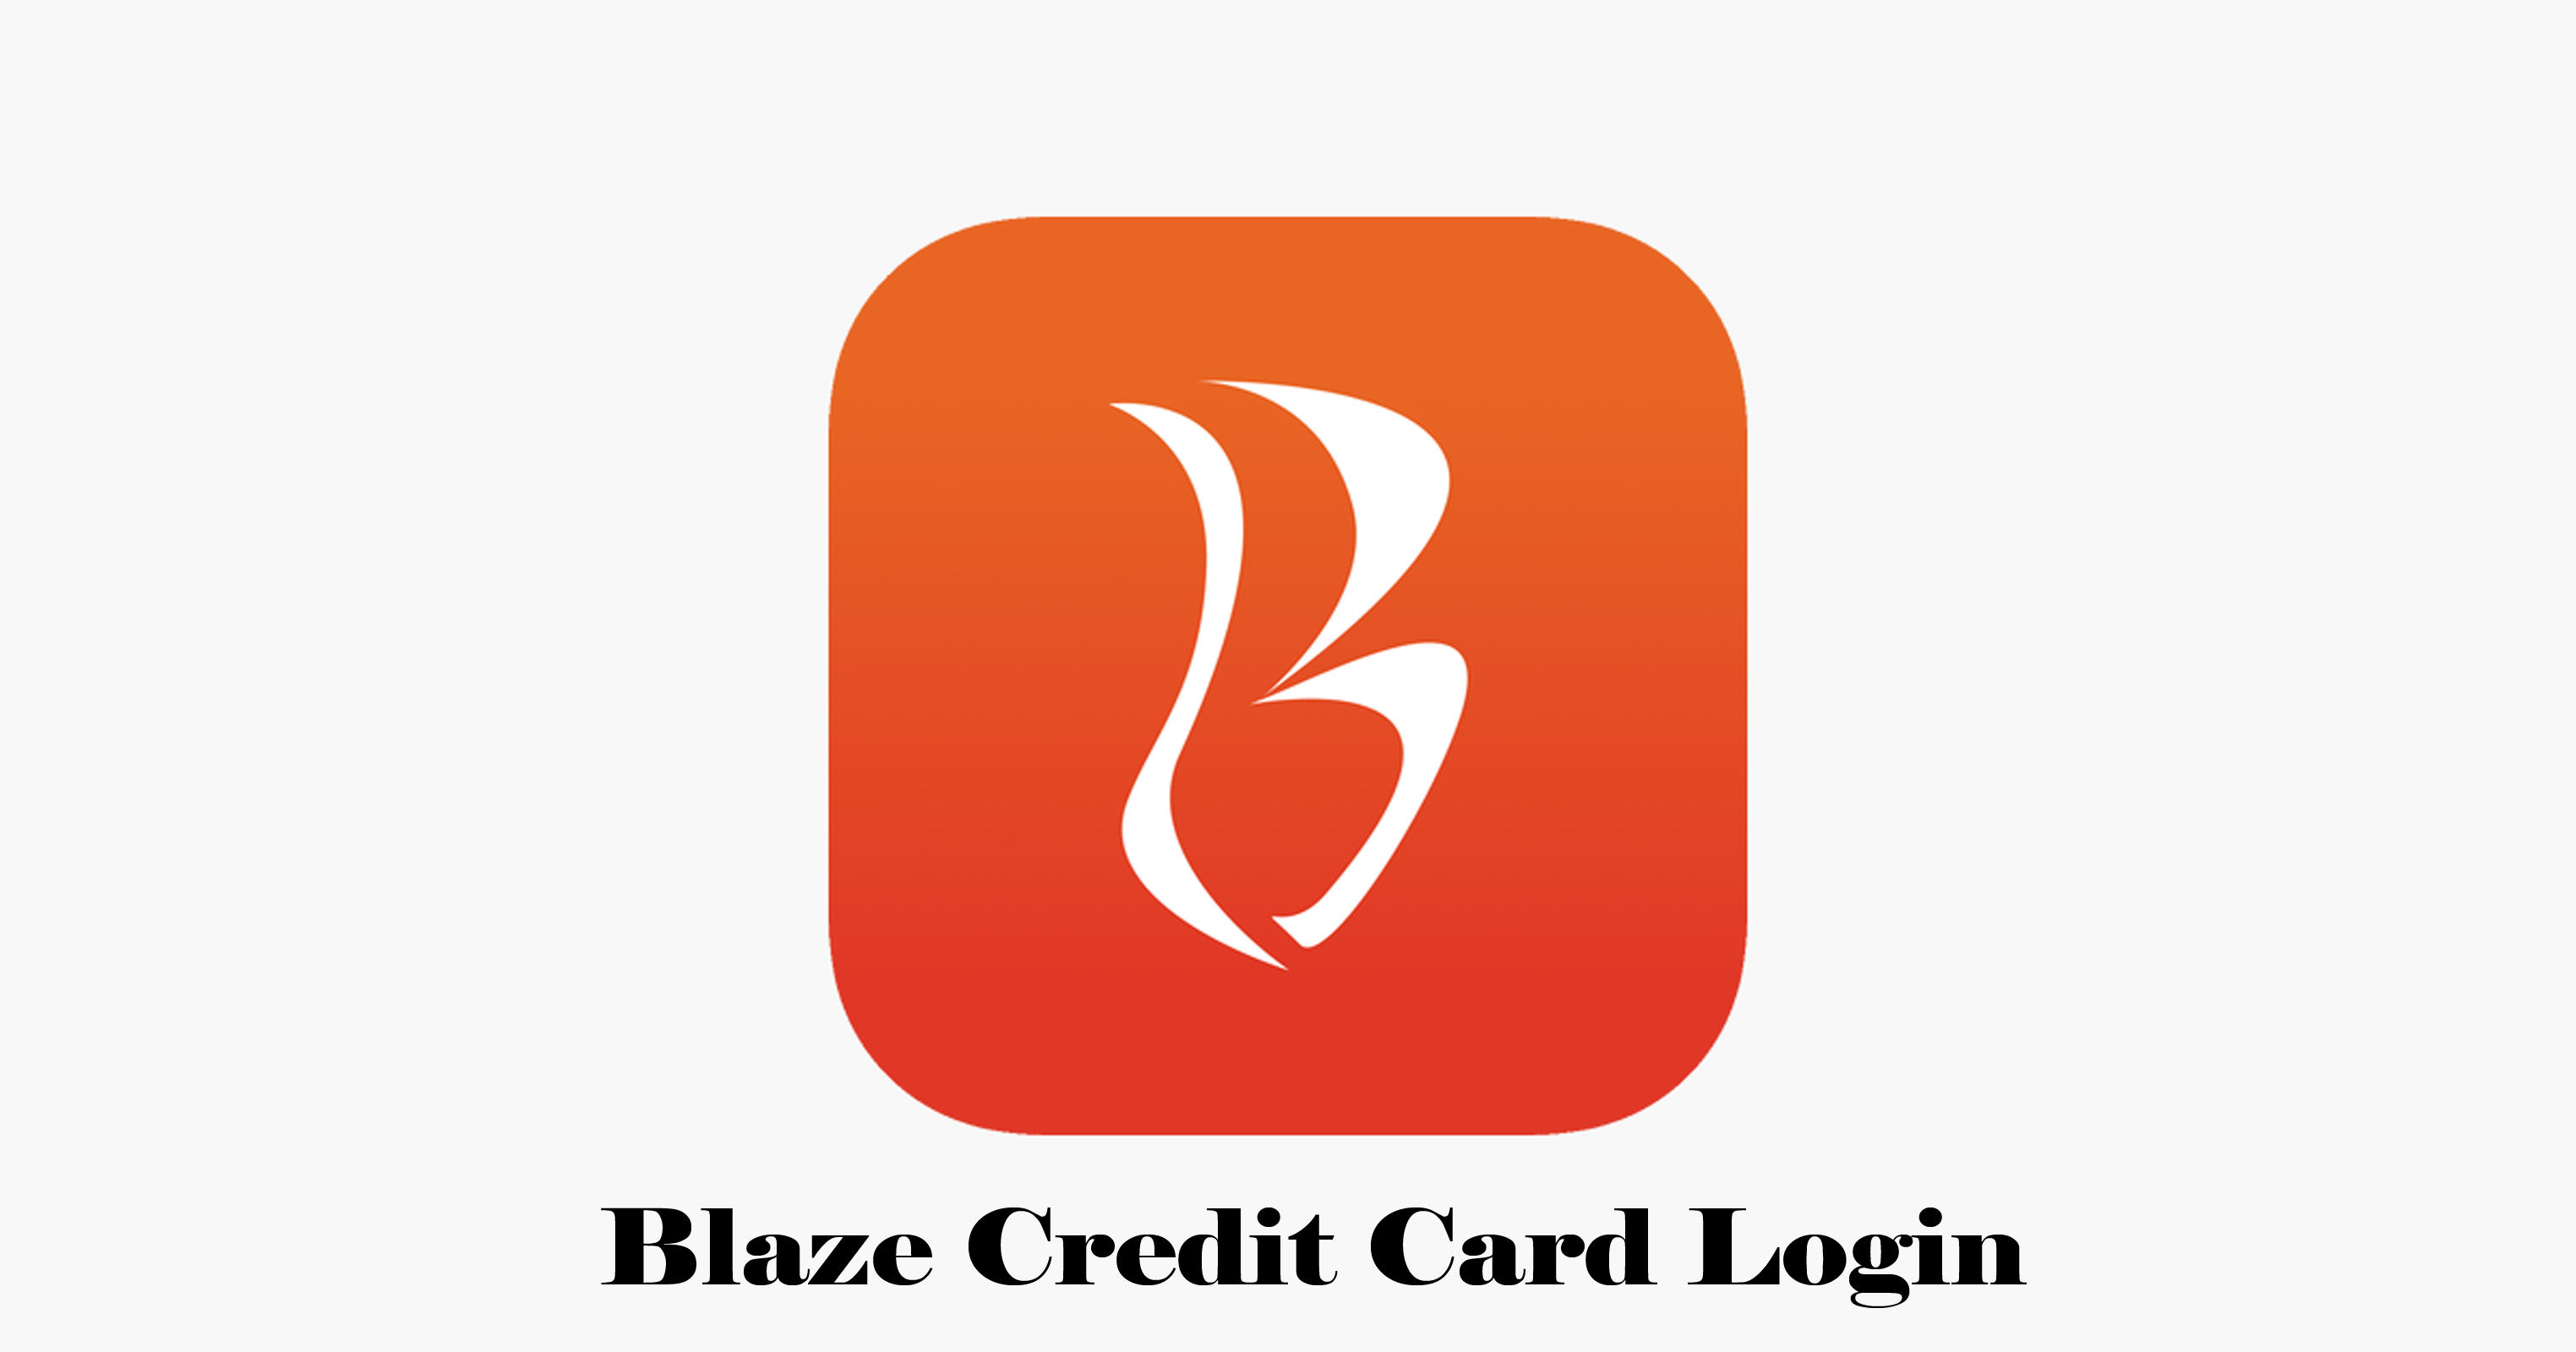 Blaze Credit Card Login - Blaze Credit Card Apply